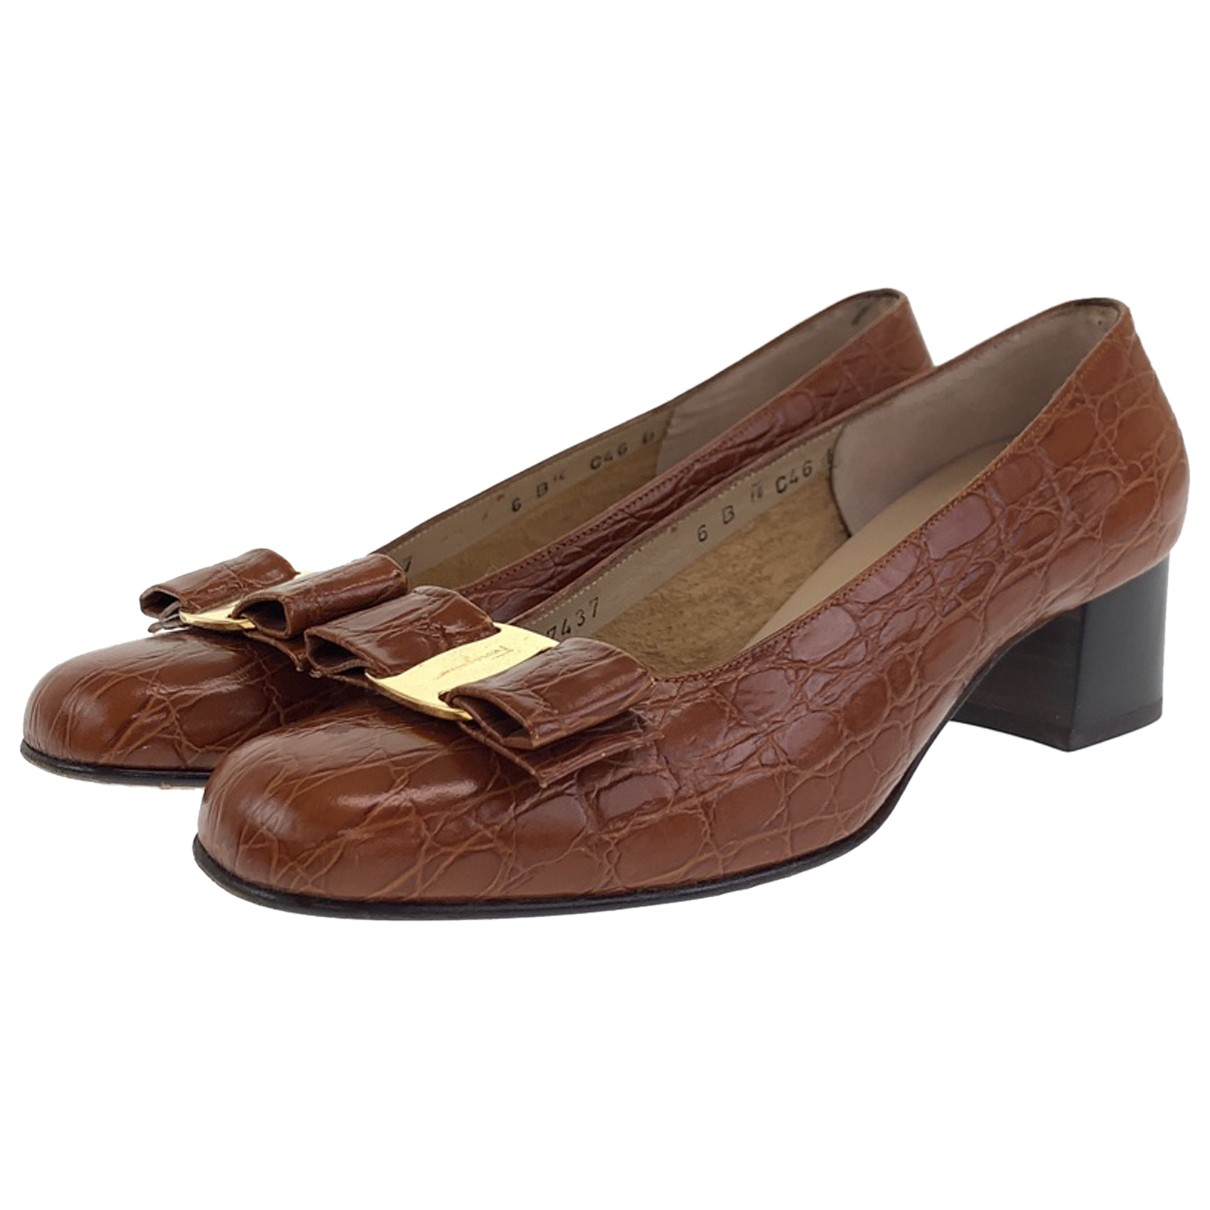 Salvatore Ferragamo N Brown Leather Heels for Women 6 US